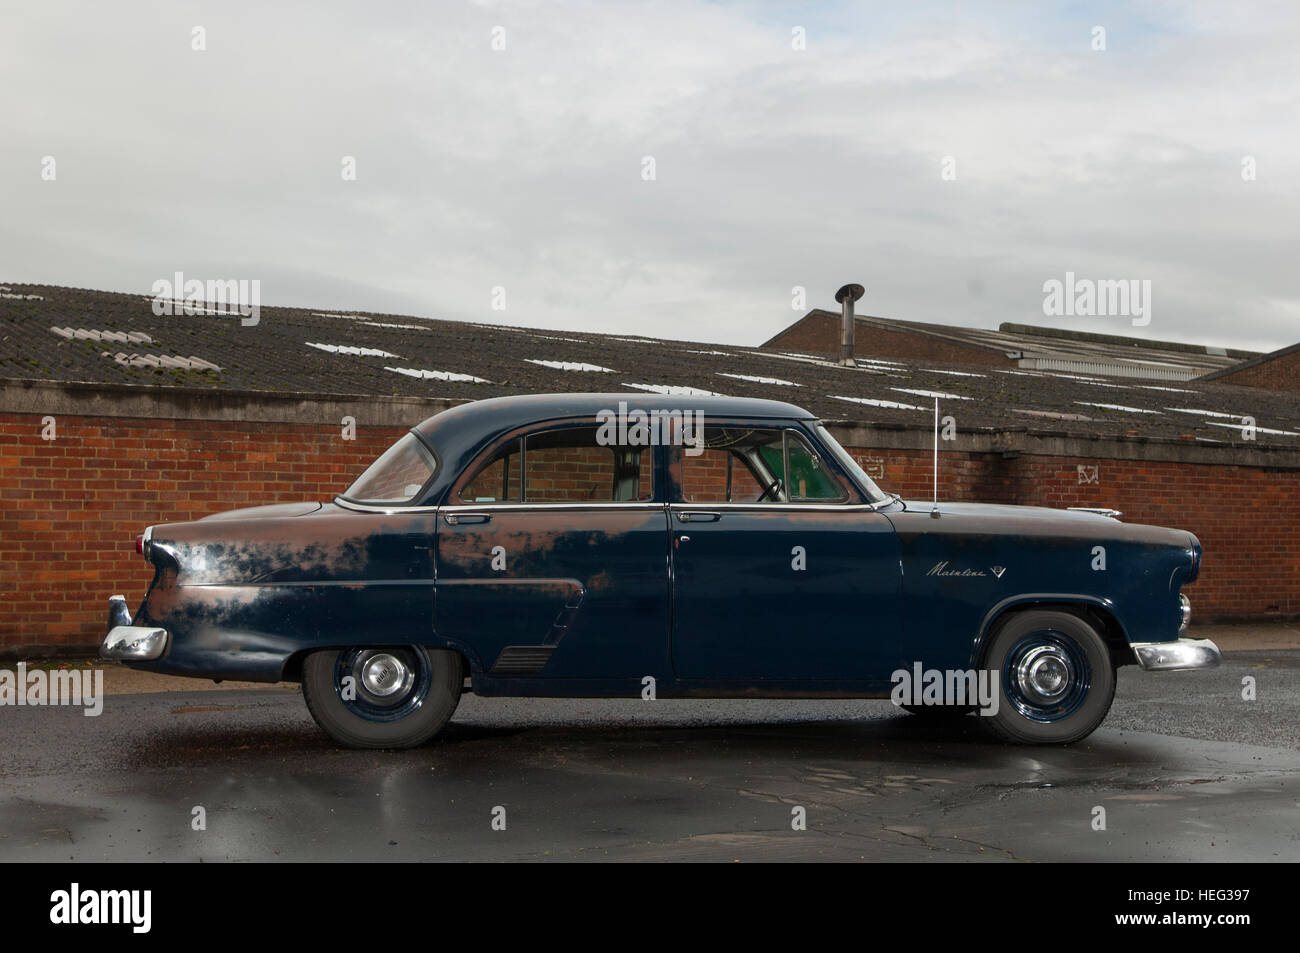 1952 Ford Mainline American sun bleach patina'd classic car, also known as a Shoebox Ford - Stock Image